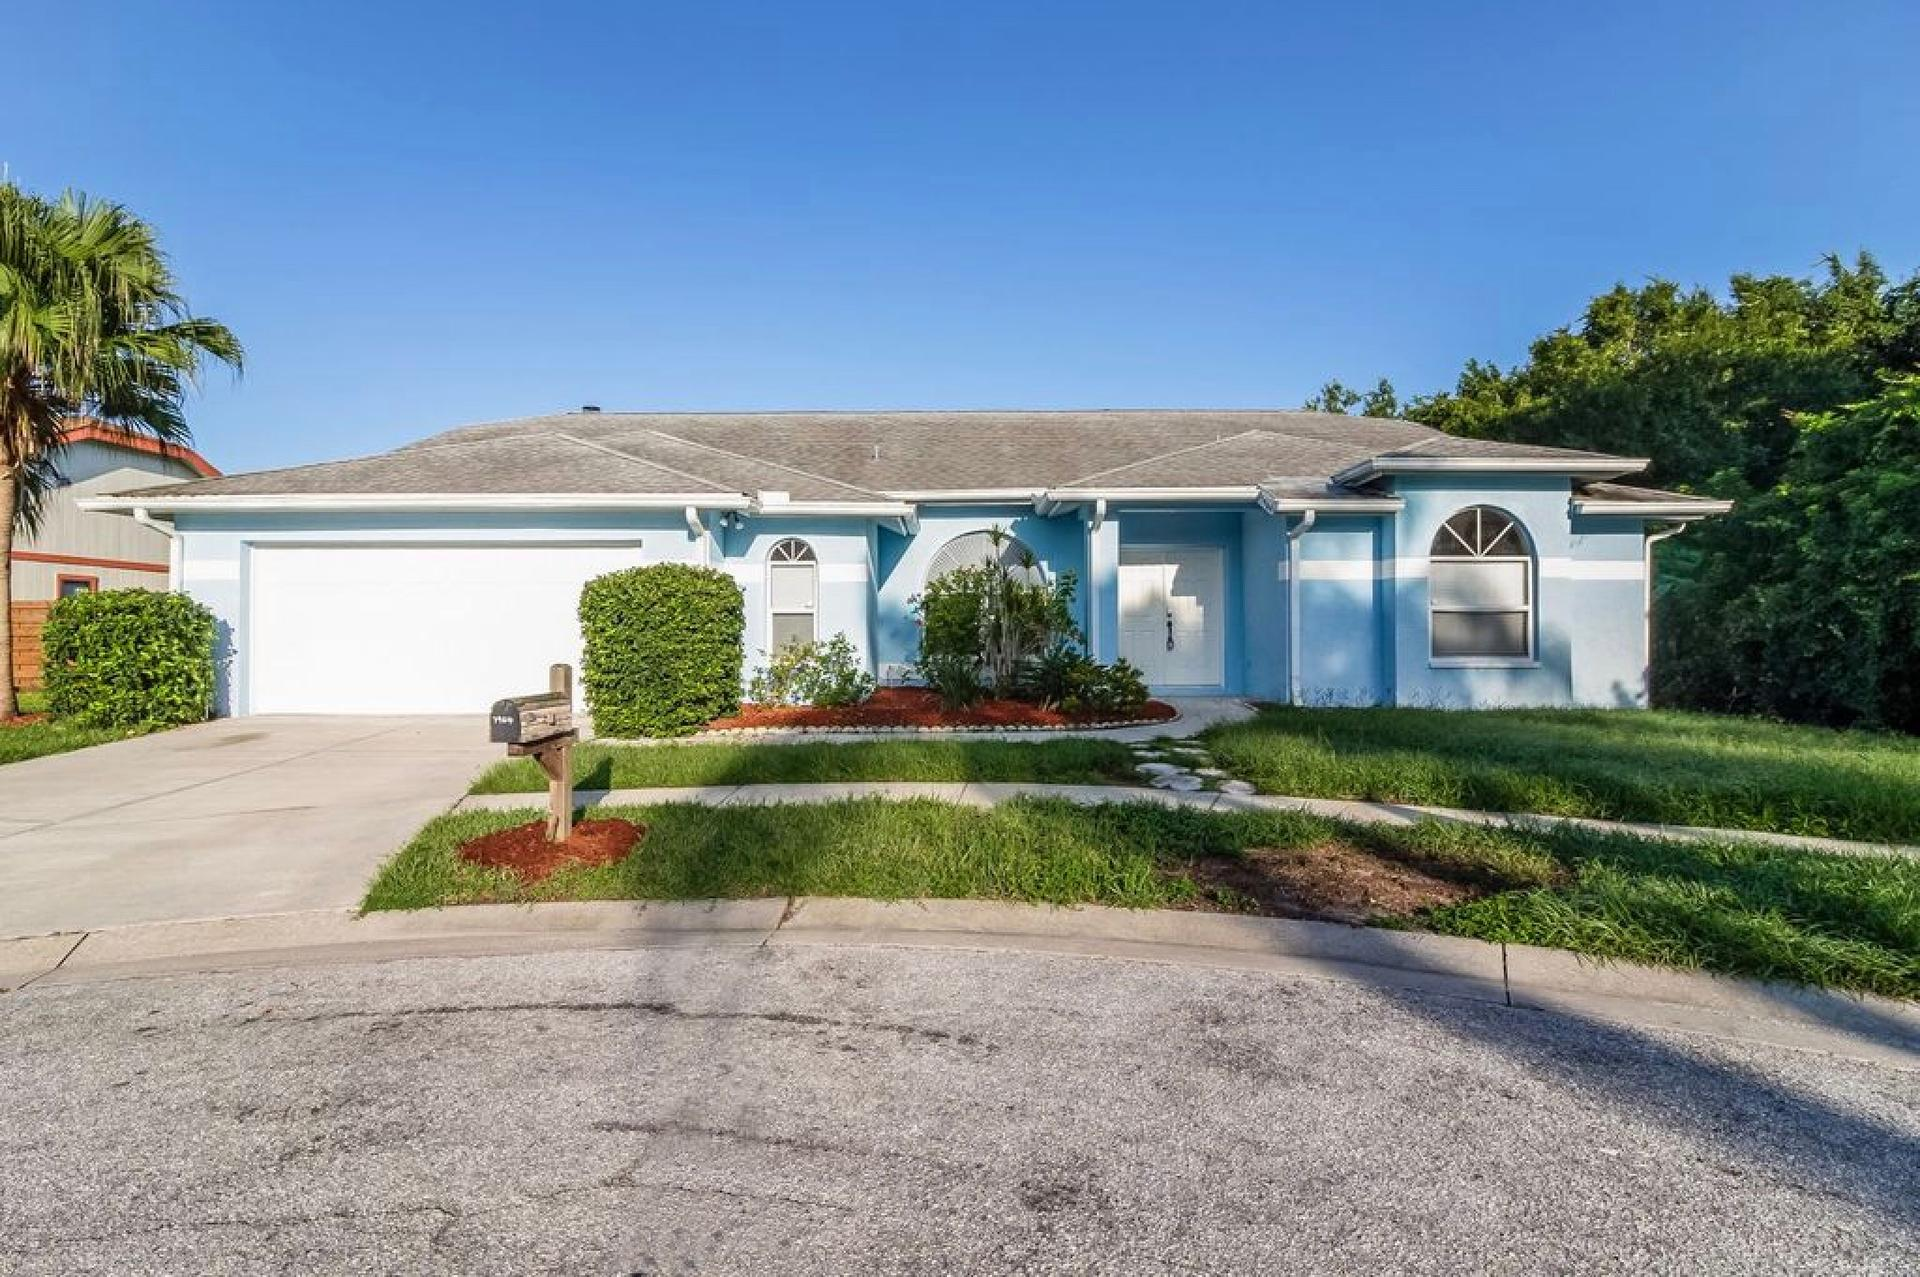 Photo of property: 7964 Glenbrooke Ln, Sarasota, FL 34243